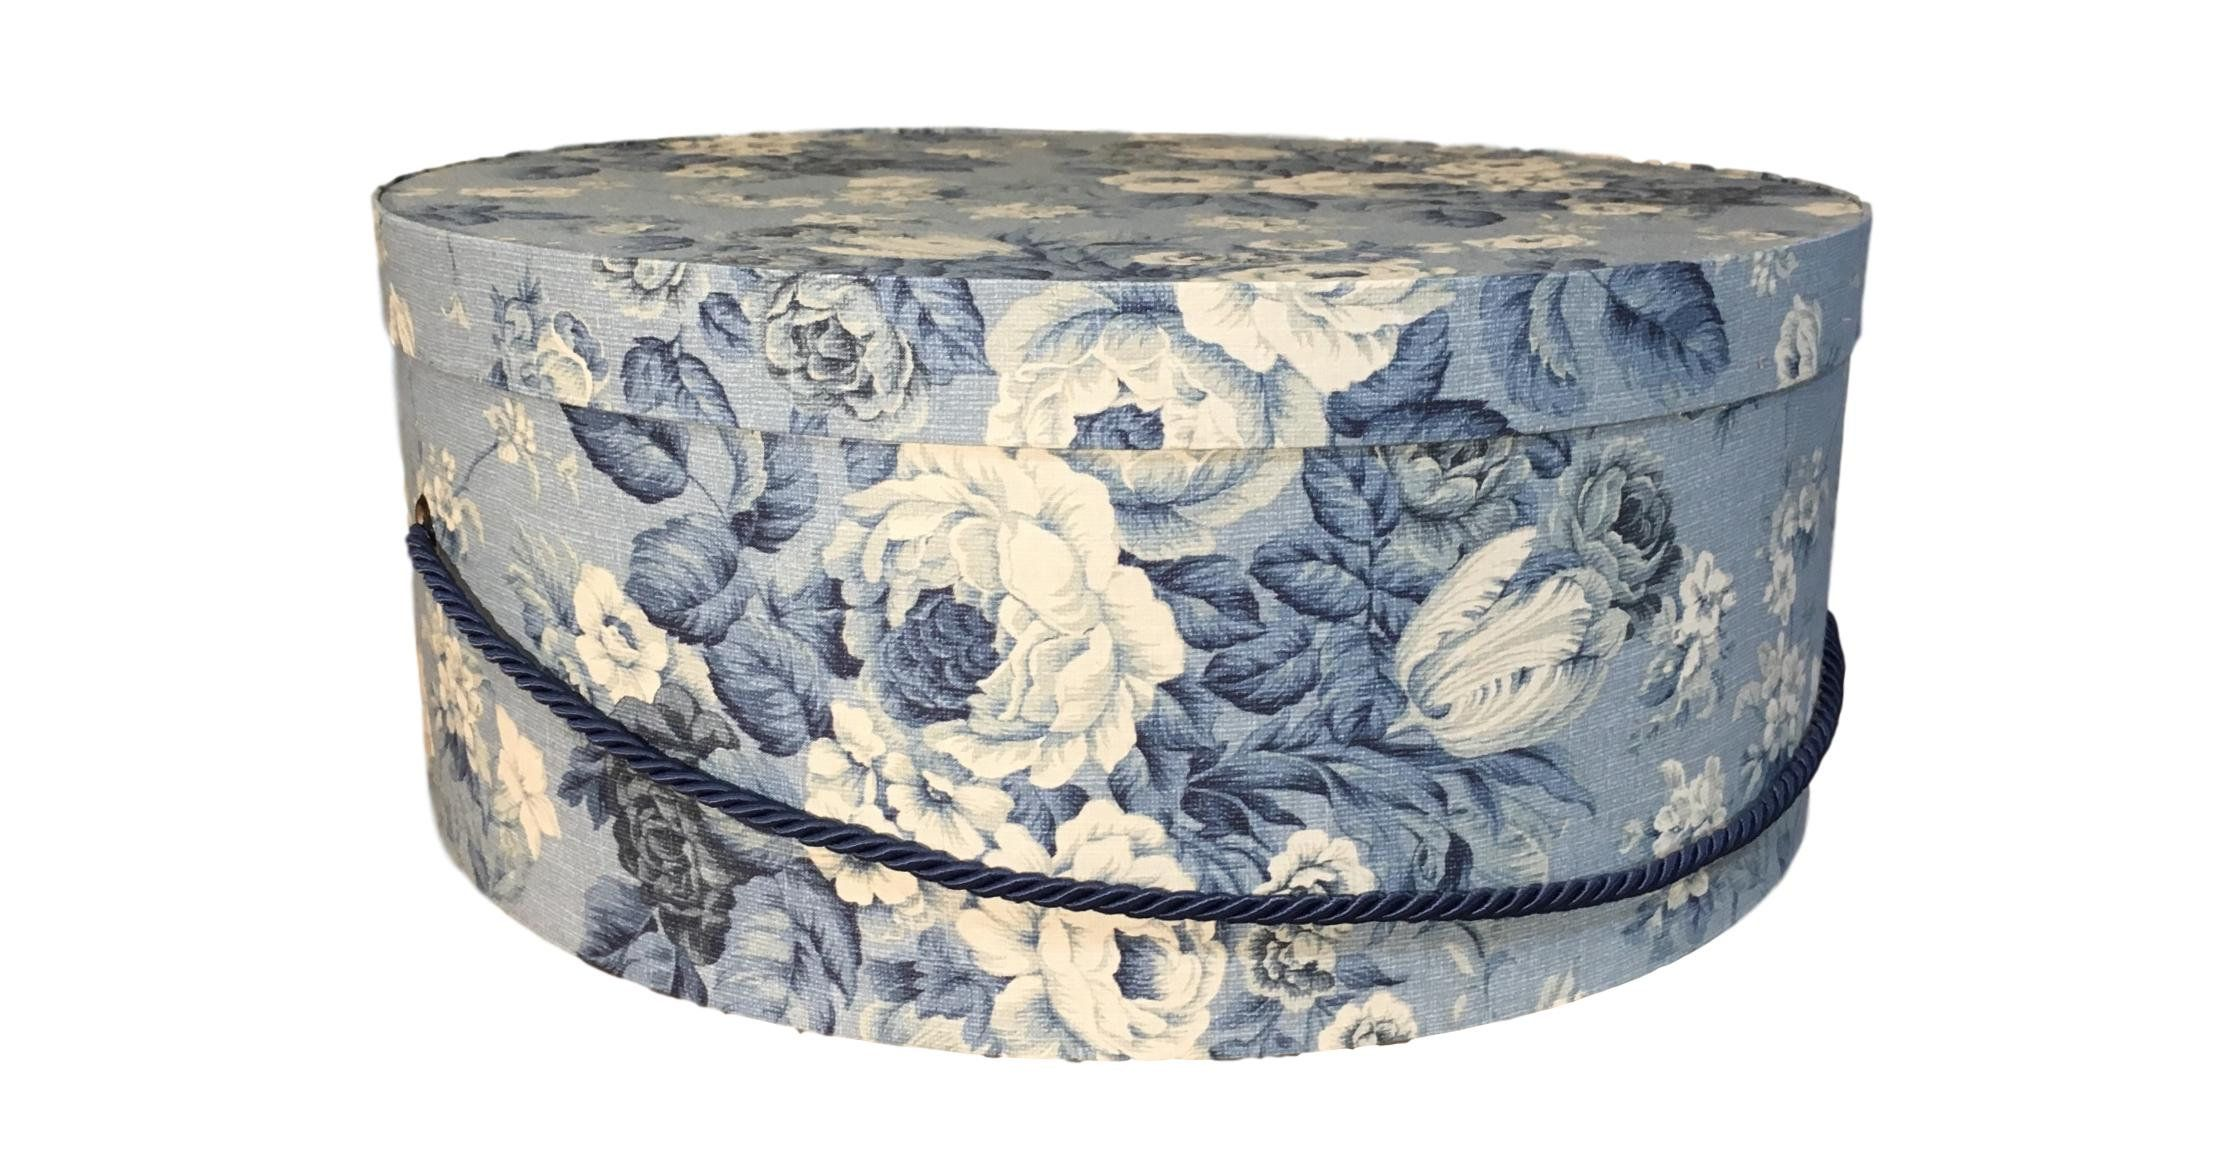 Extra Large Hat Box In Blue Floral Decorative Fabric Covered Hat Boxes Round Storage Box Keepsake Boxes With Lid Nesting Fabric Decor Large Hats Hat Boxes